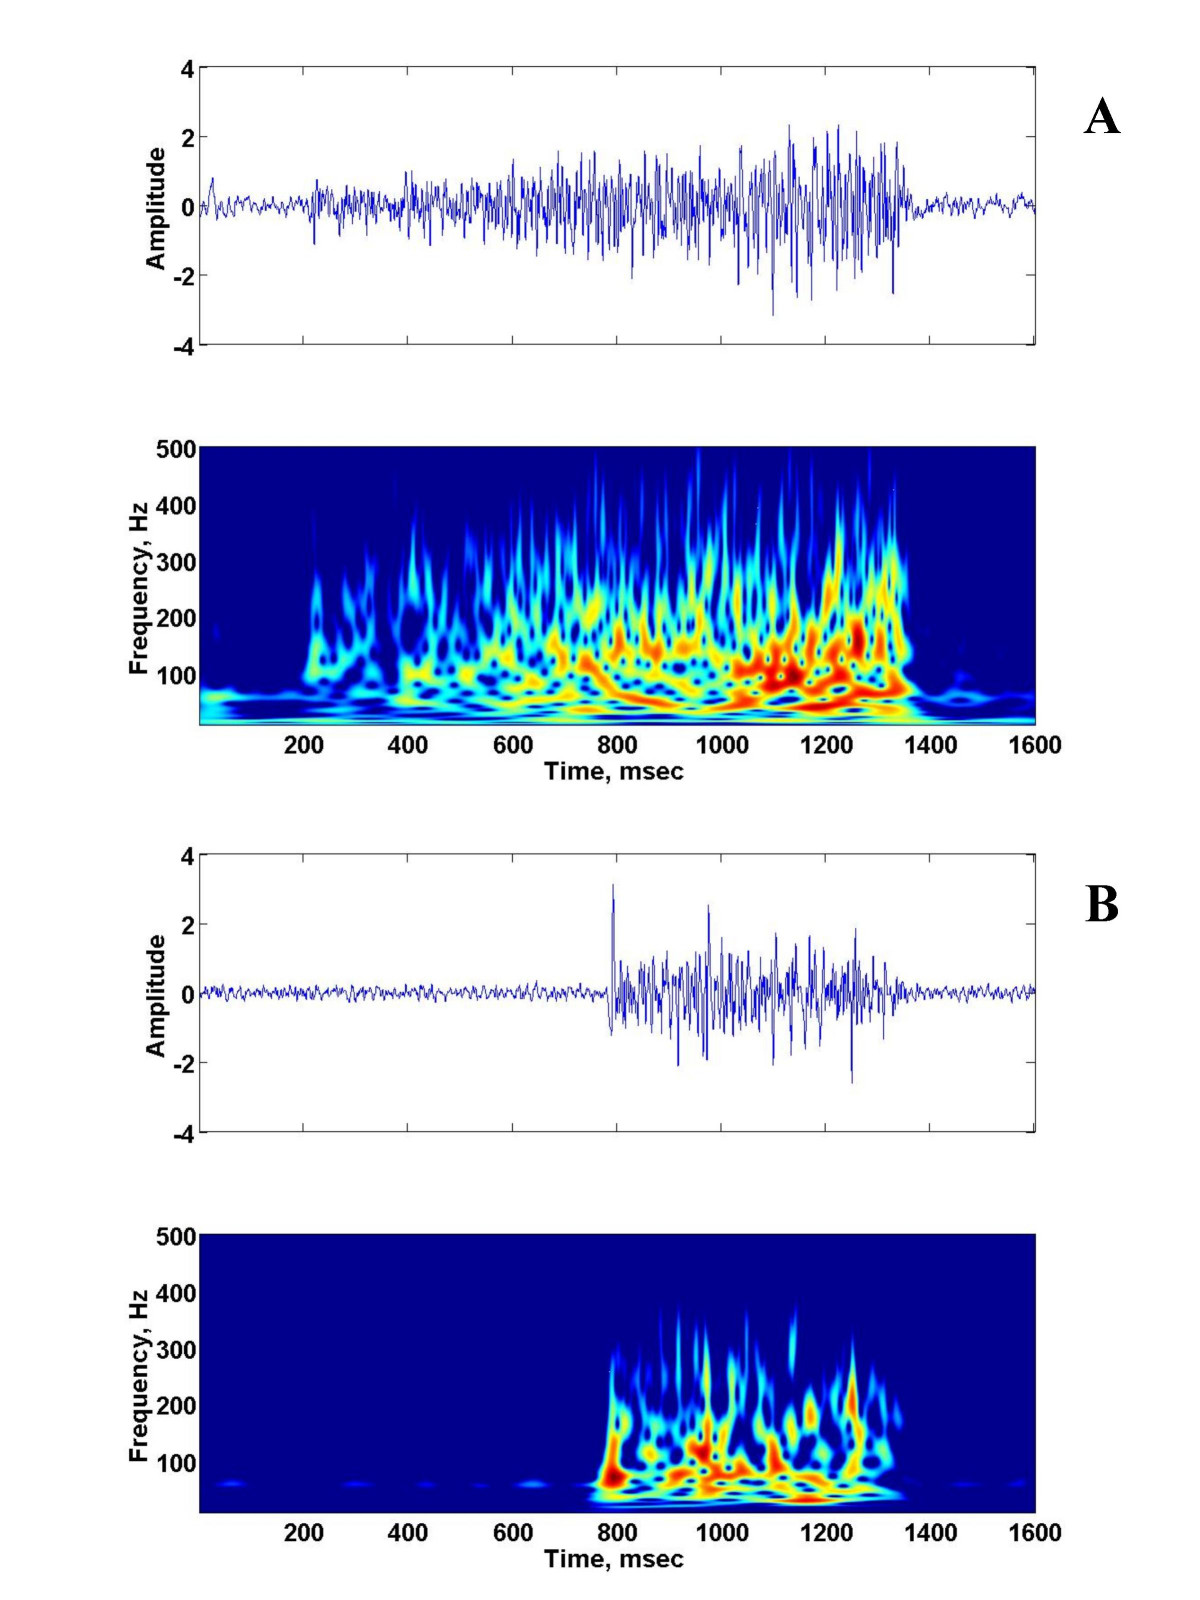 https://static-content.springer.com/image/art%3A10.1186%2F1743-0003-2-32/MediaObjects/12984_2005_Article_46_Fig3_HTML.jpg